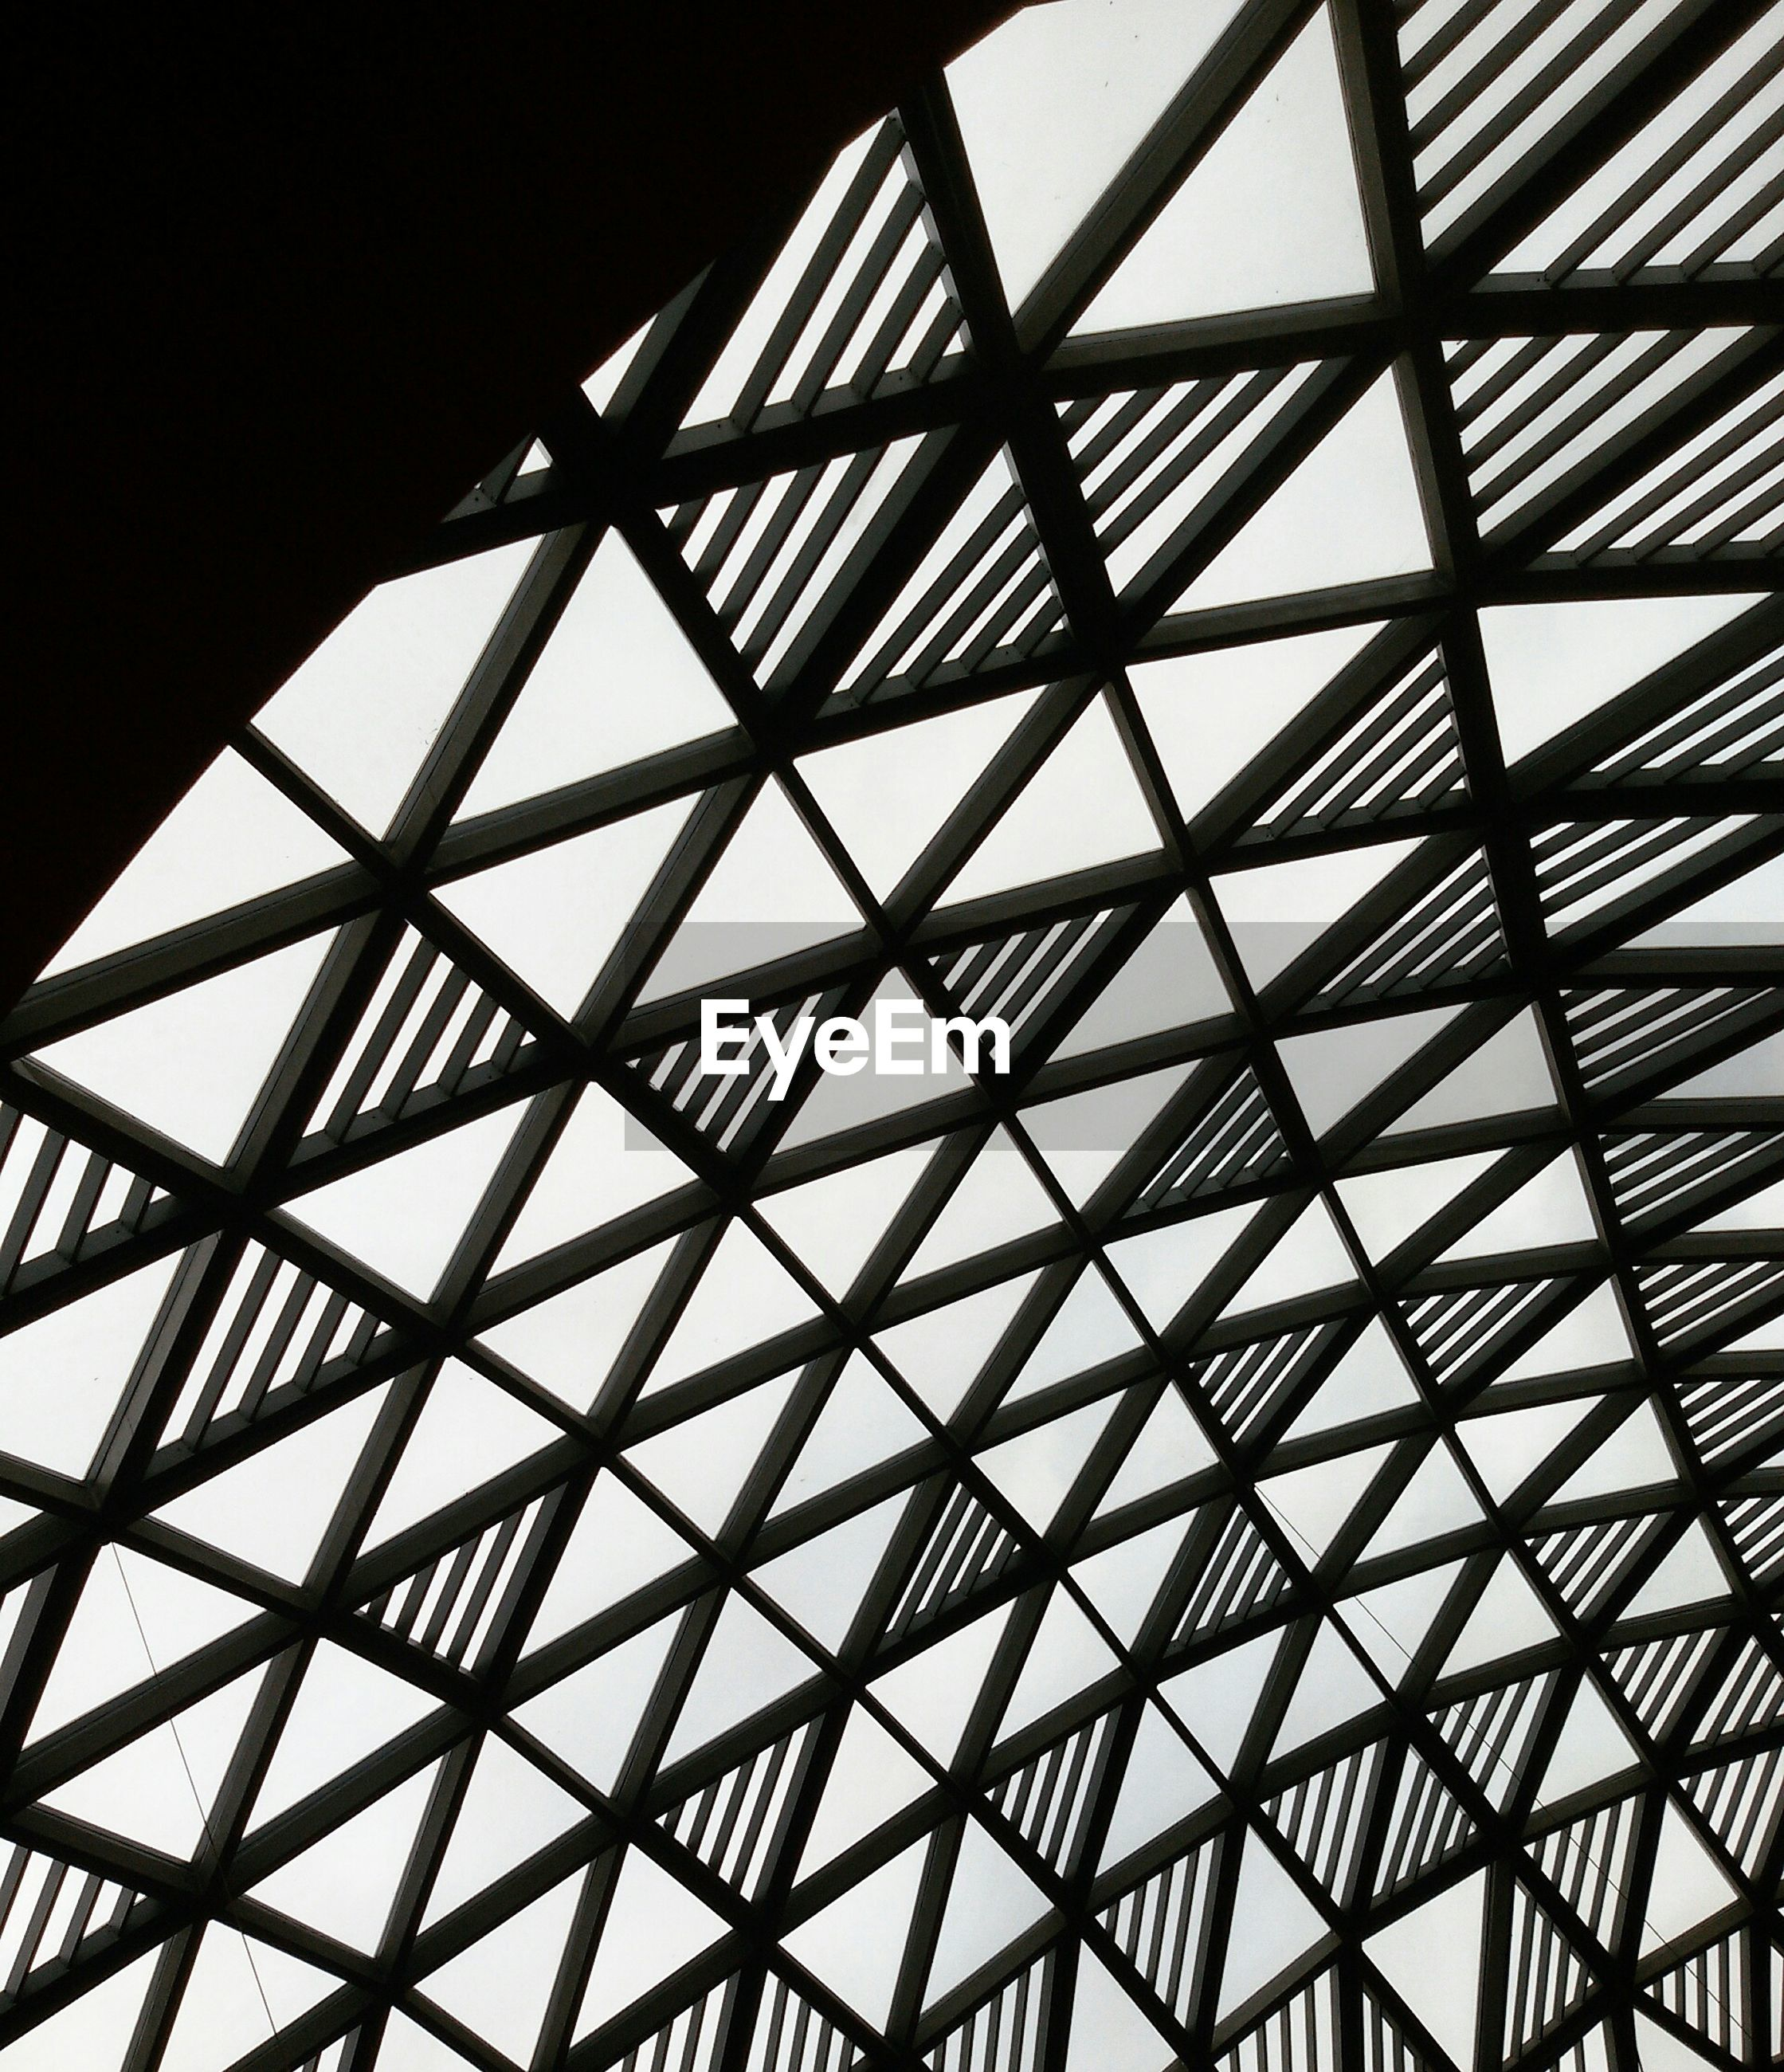 low angle view, architecture, built structure, pattern, ceiling, indoors, geometric shape, glass - material, architectural feature, design, full frame, backgrounds, modern, directly below, grid, skylight, no people, sky, day, metal